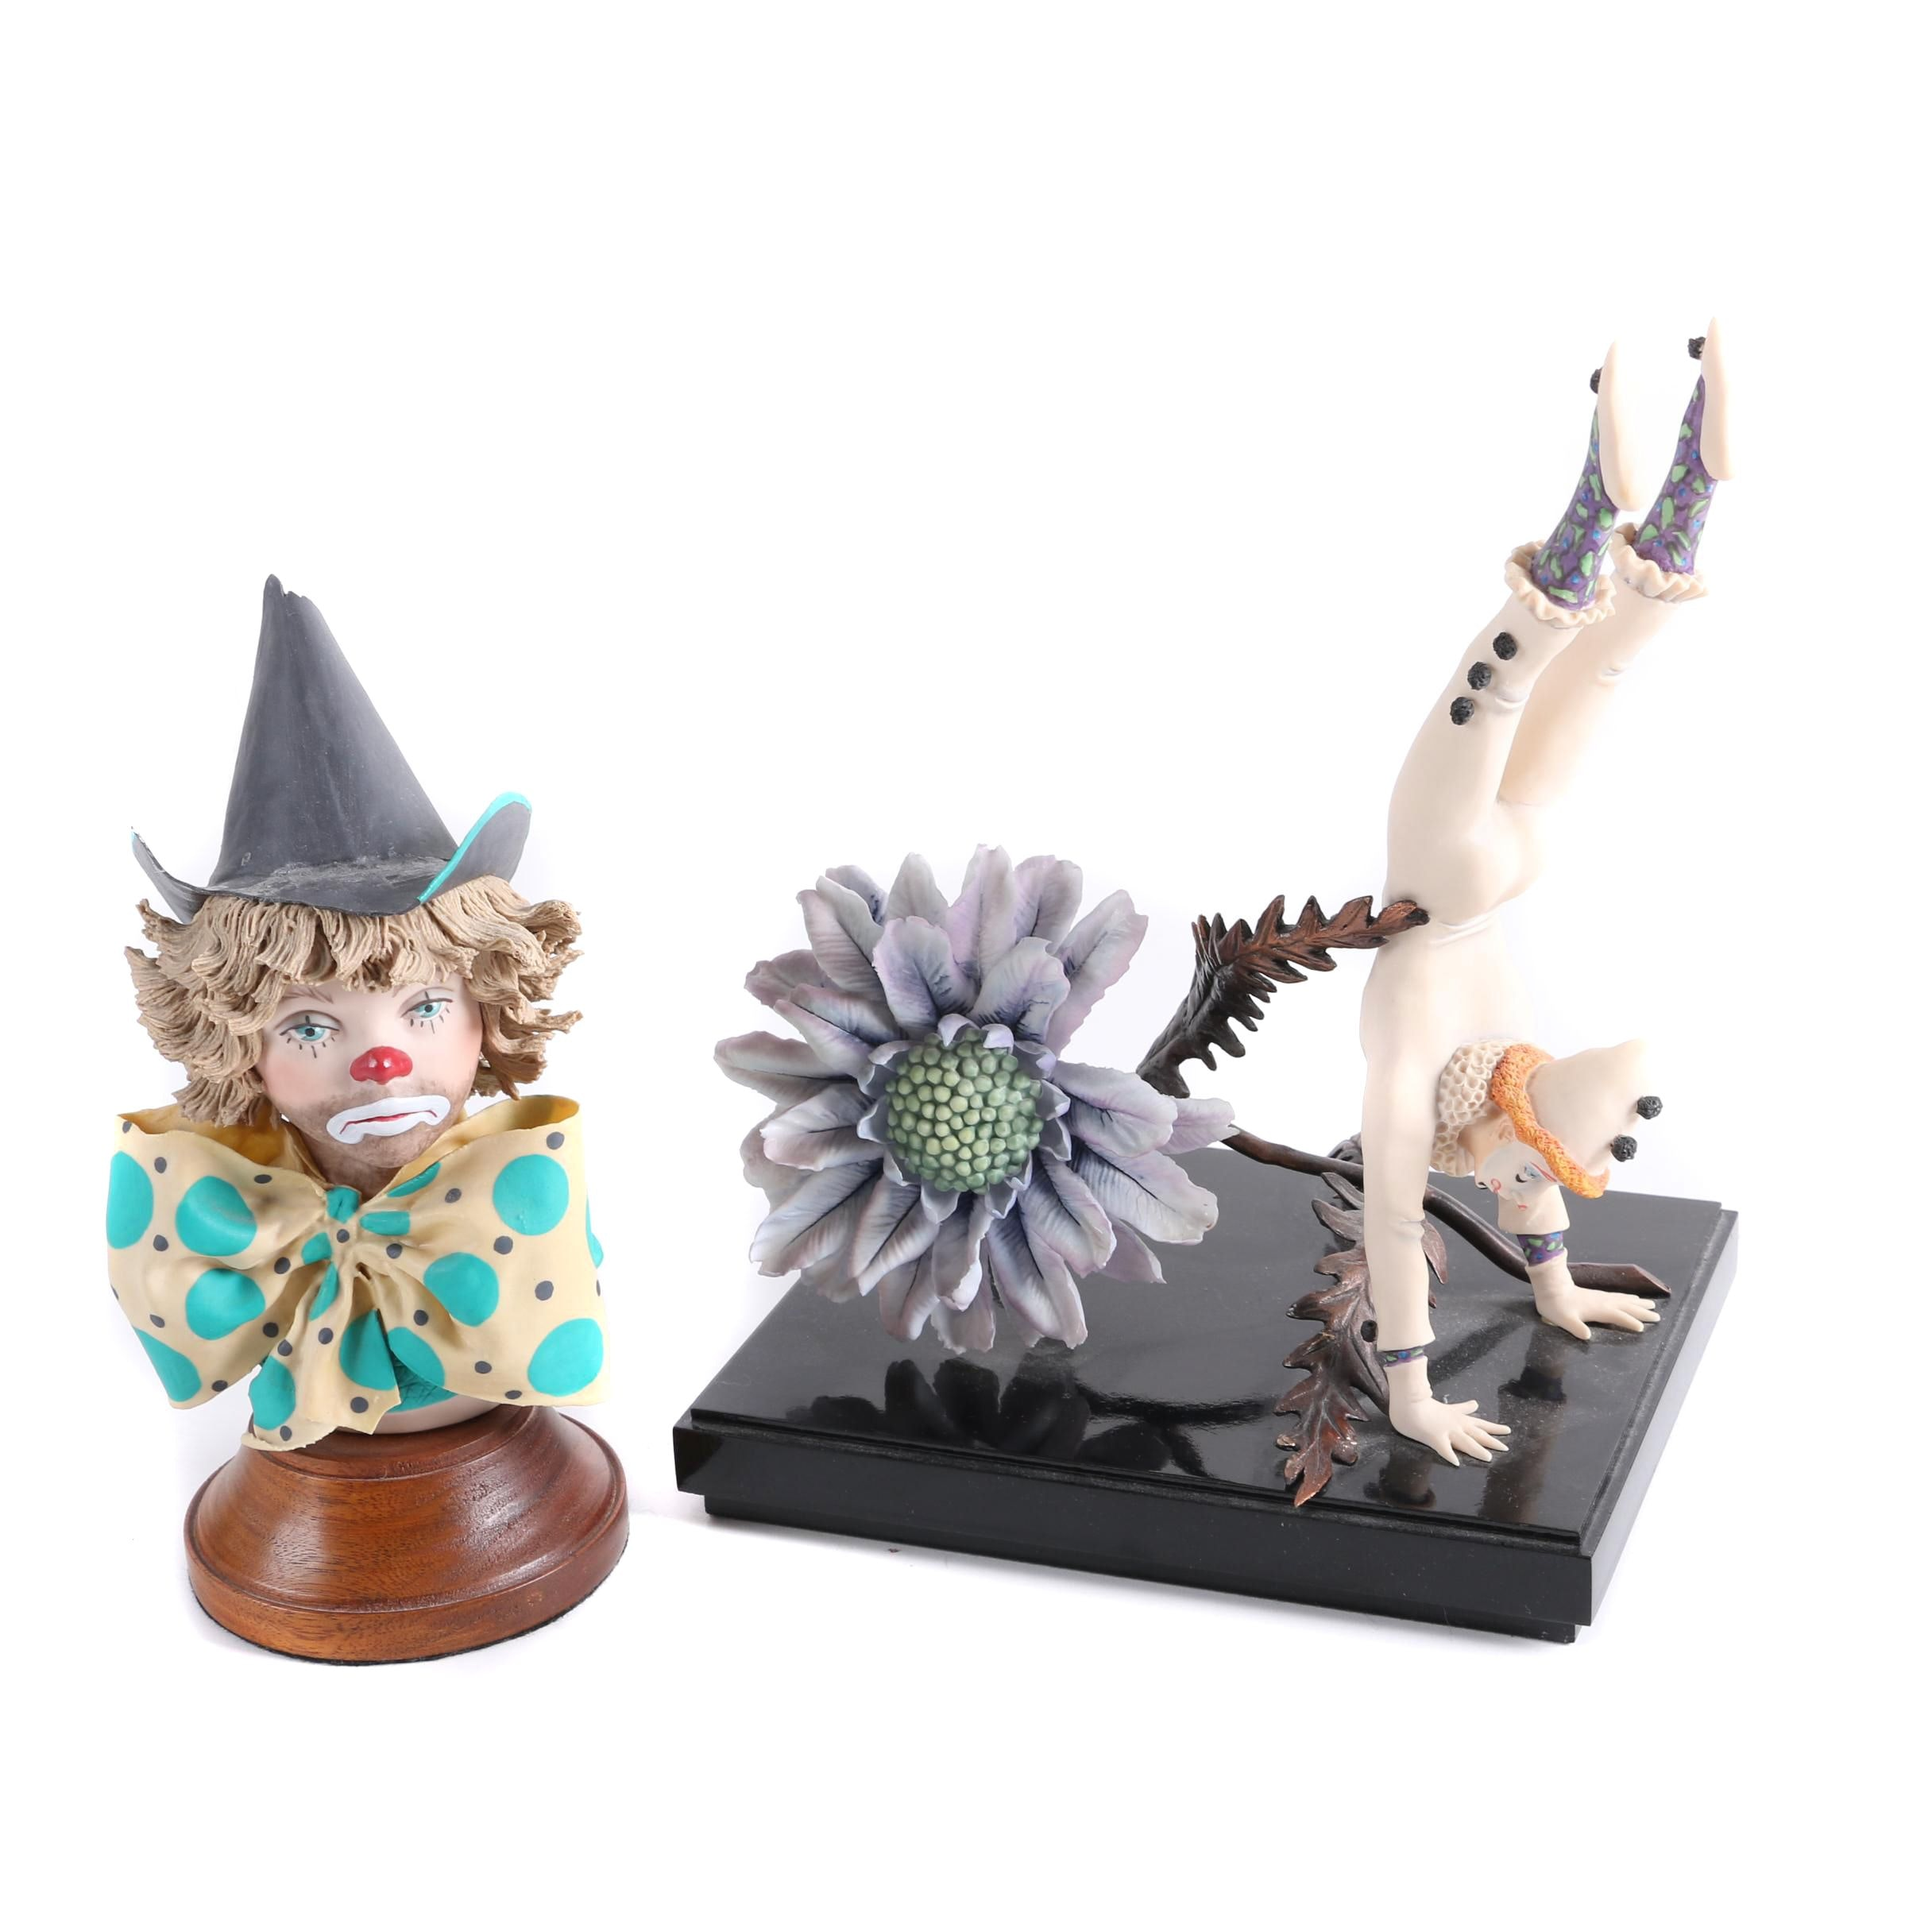 Limited Edition Clown Themed Porcelain Figurines